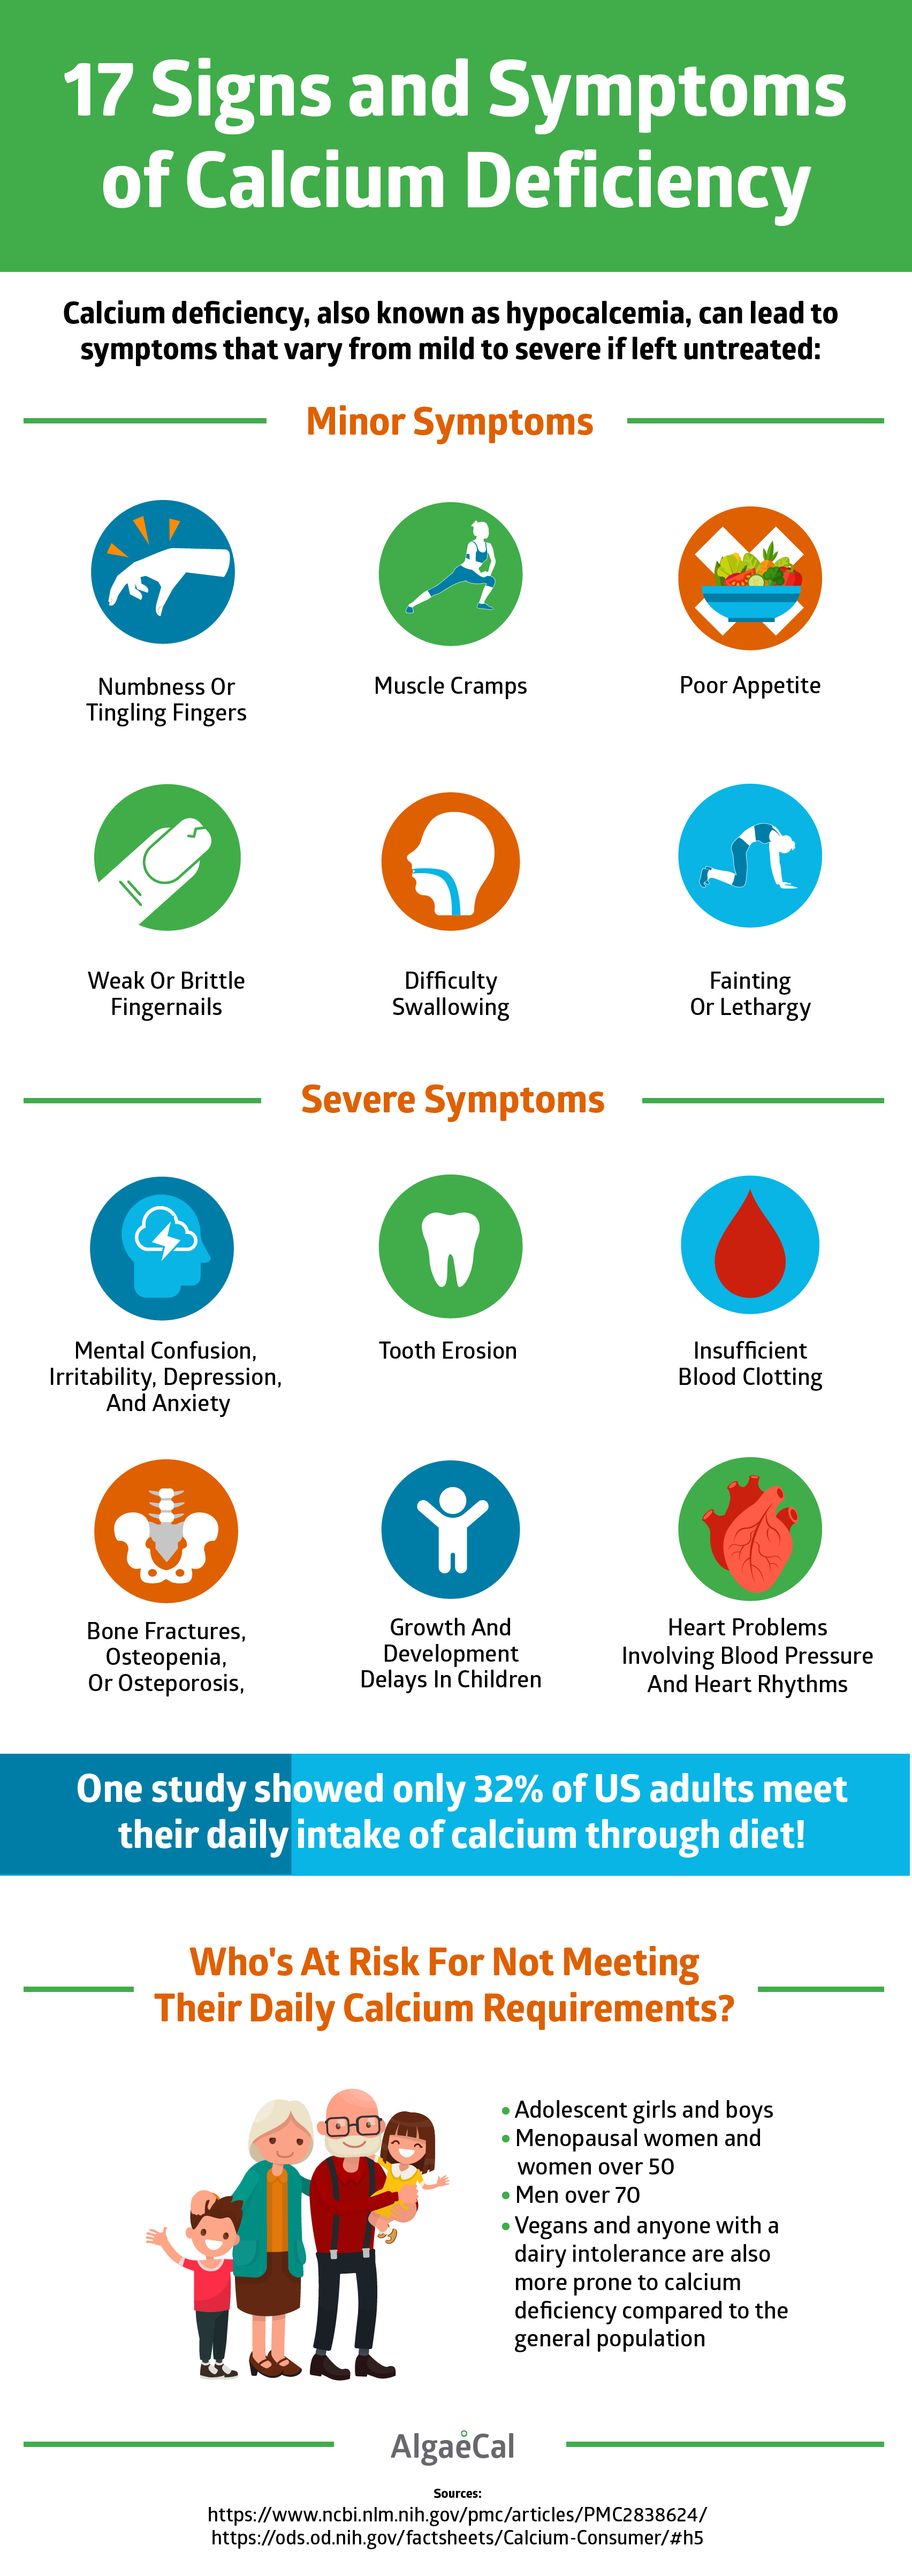 Calcium Deficiency Signs and Symptoms infographic